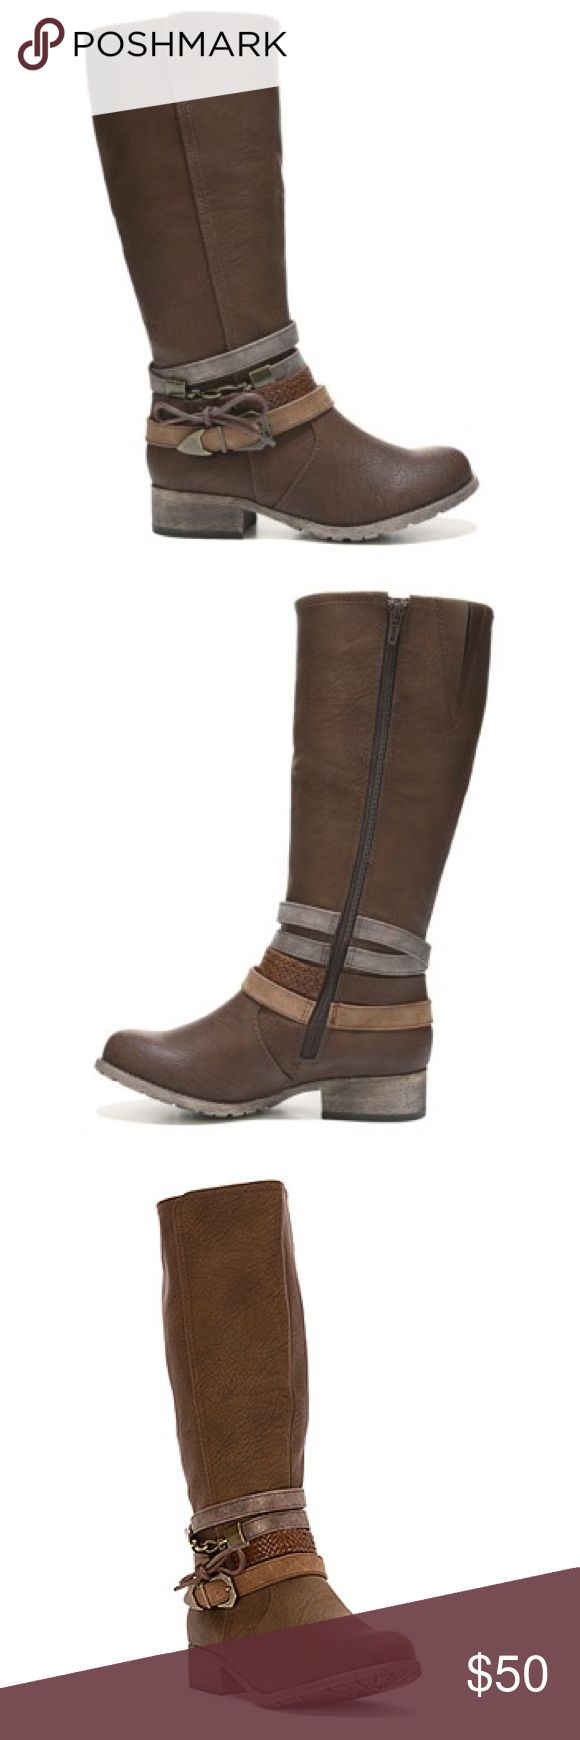 Jellypop Jassina Riding Boot Brand new in box.  Beautiful boots, very comfortable, I just don't need them.  I have fairly large calves and these fit, however they are more fitted against my leg.  It depends how closely you prefer they hug your leg! Jellypop Shoes Winter & Rain Boots